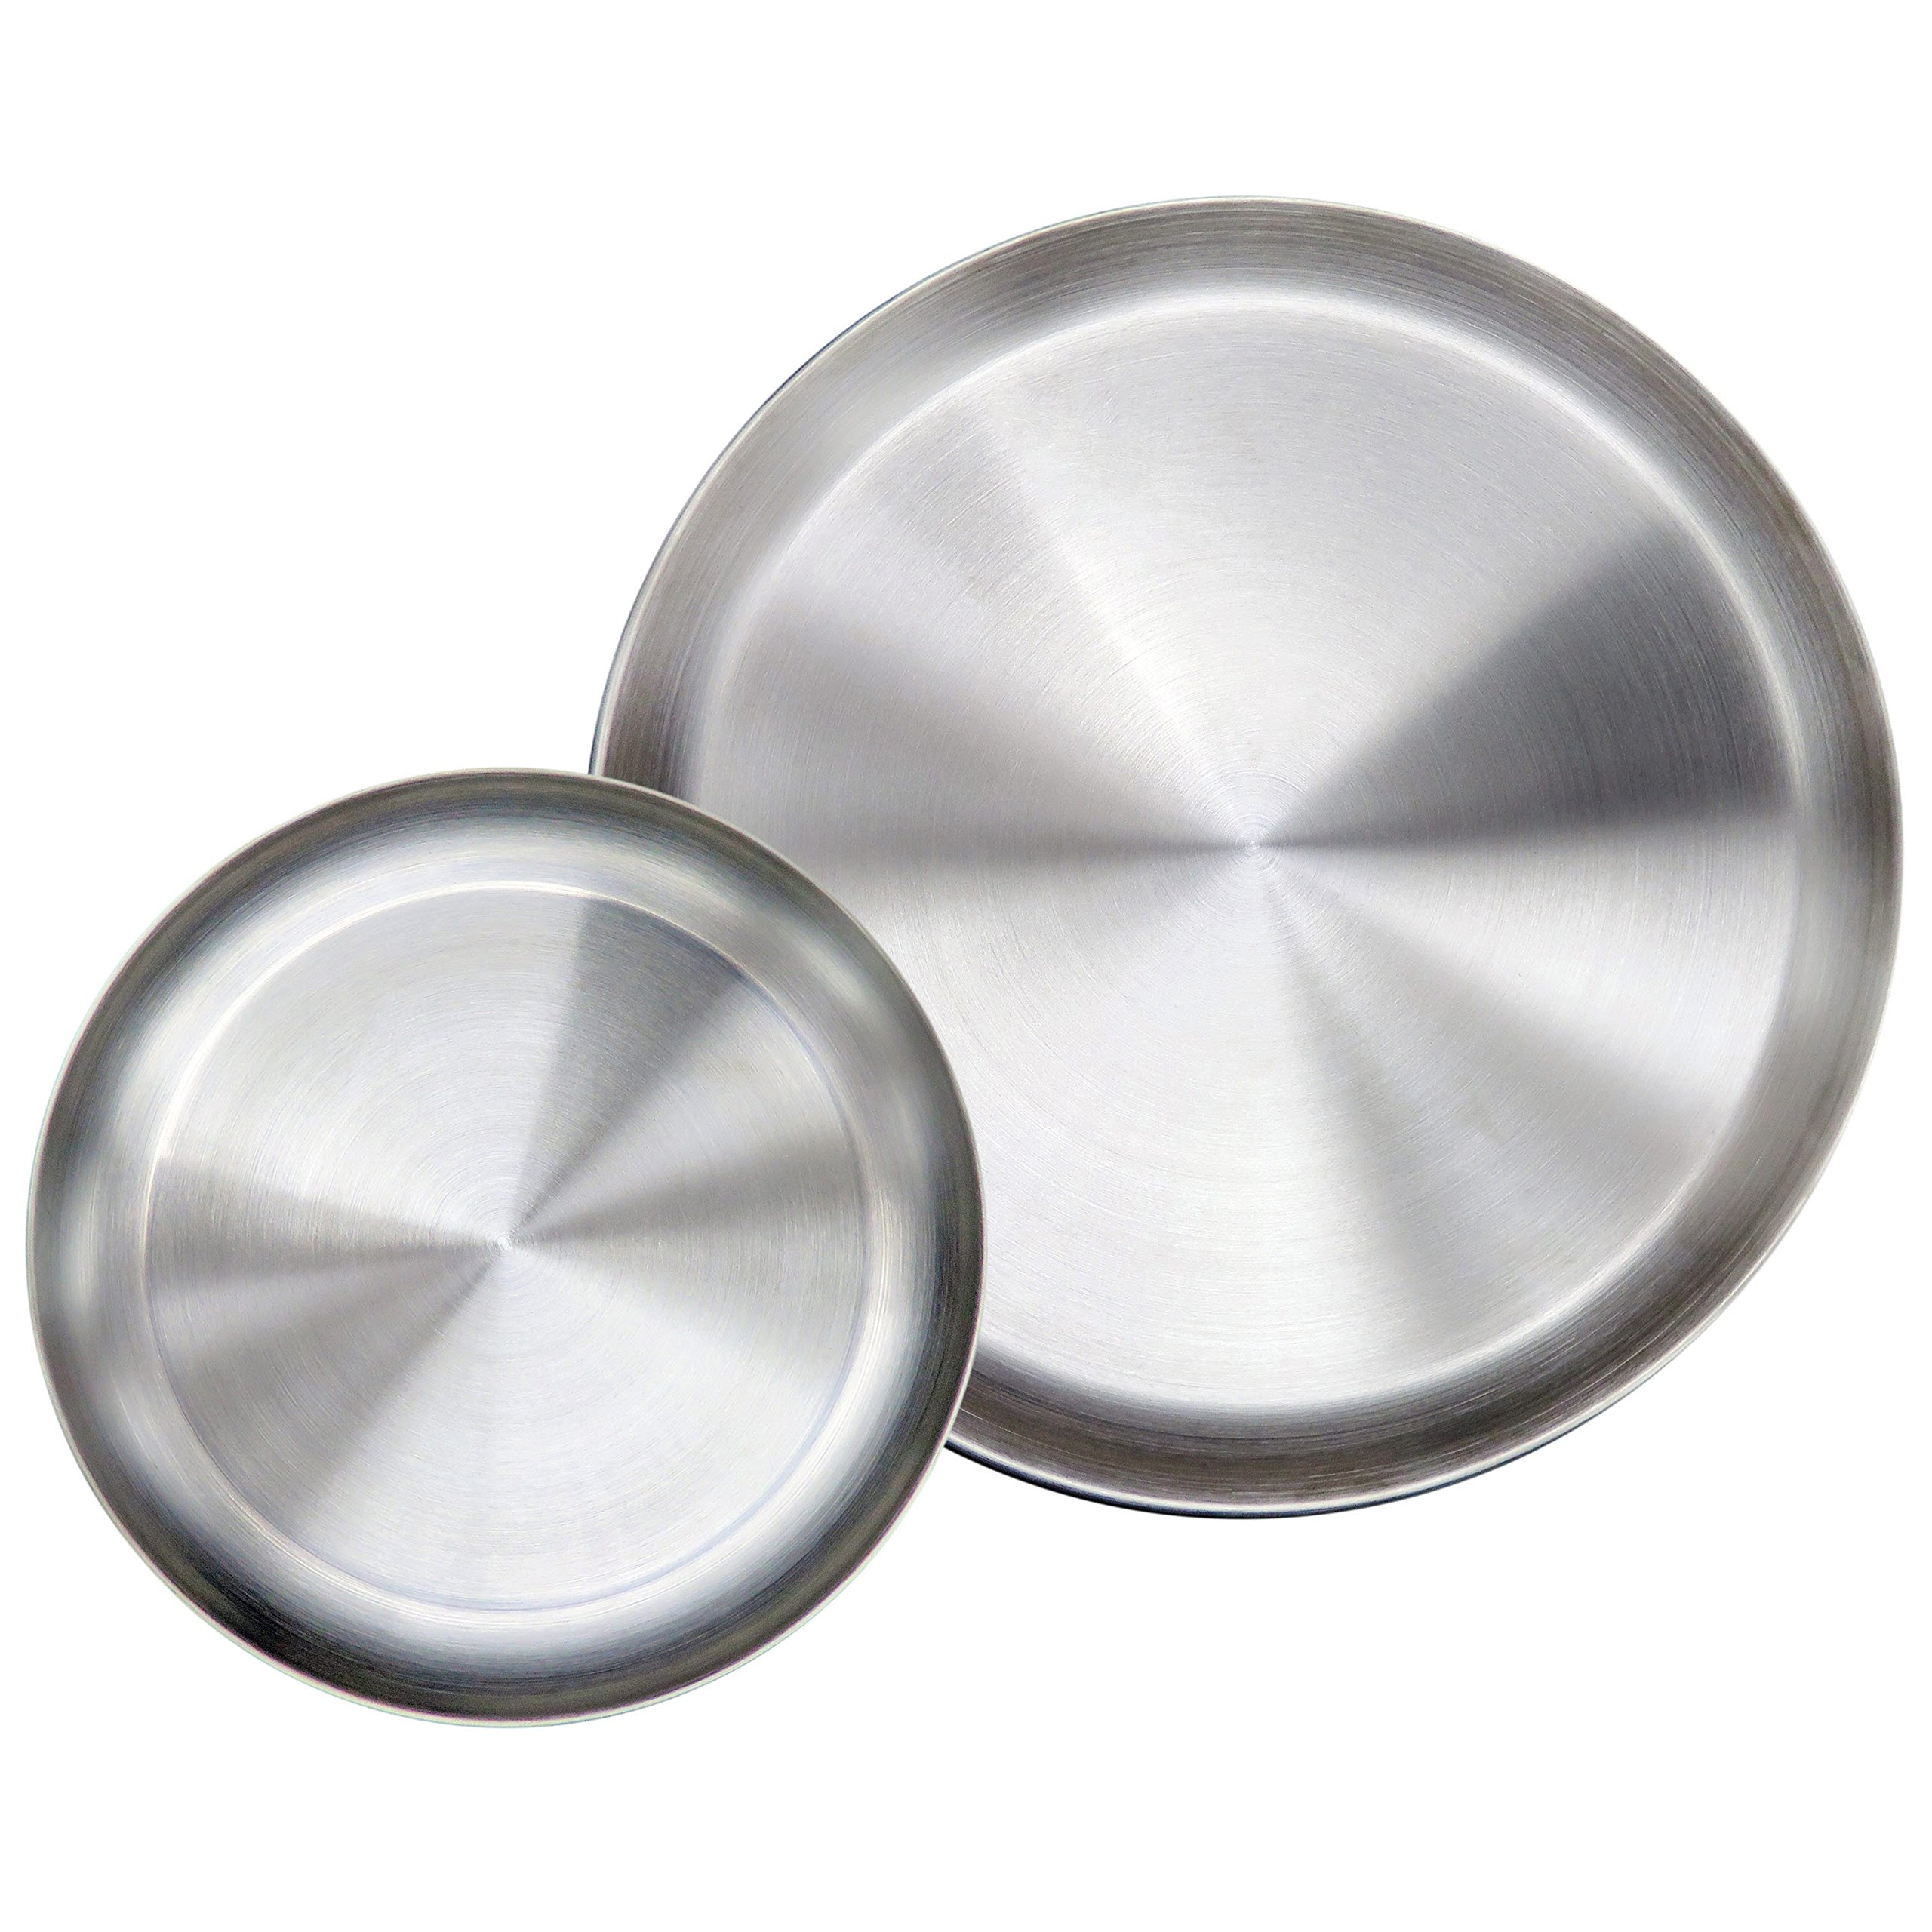 Immokaz Matte Polished 10.0 inch 304 Stainless Steel Round Plates Dish Set, for Dinner Plate, Camping Outdoor Plate, BPA Free, Pack of 2 (L (10.0''))